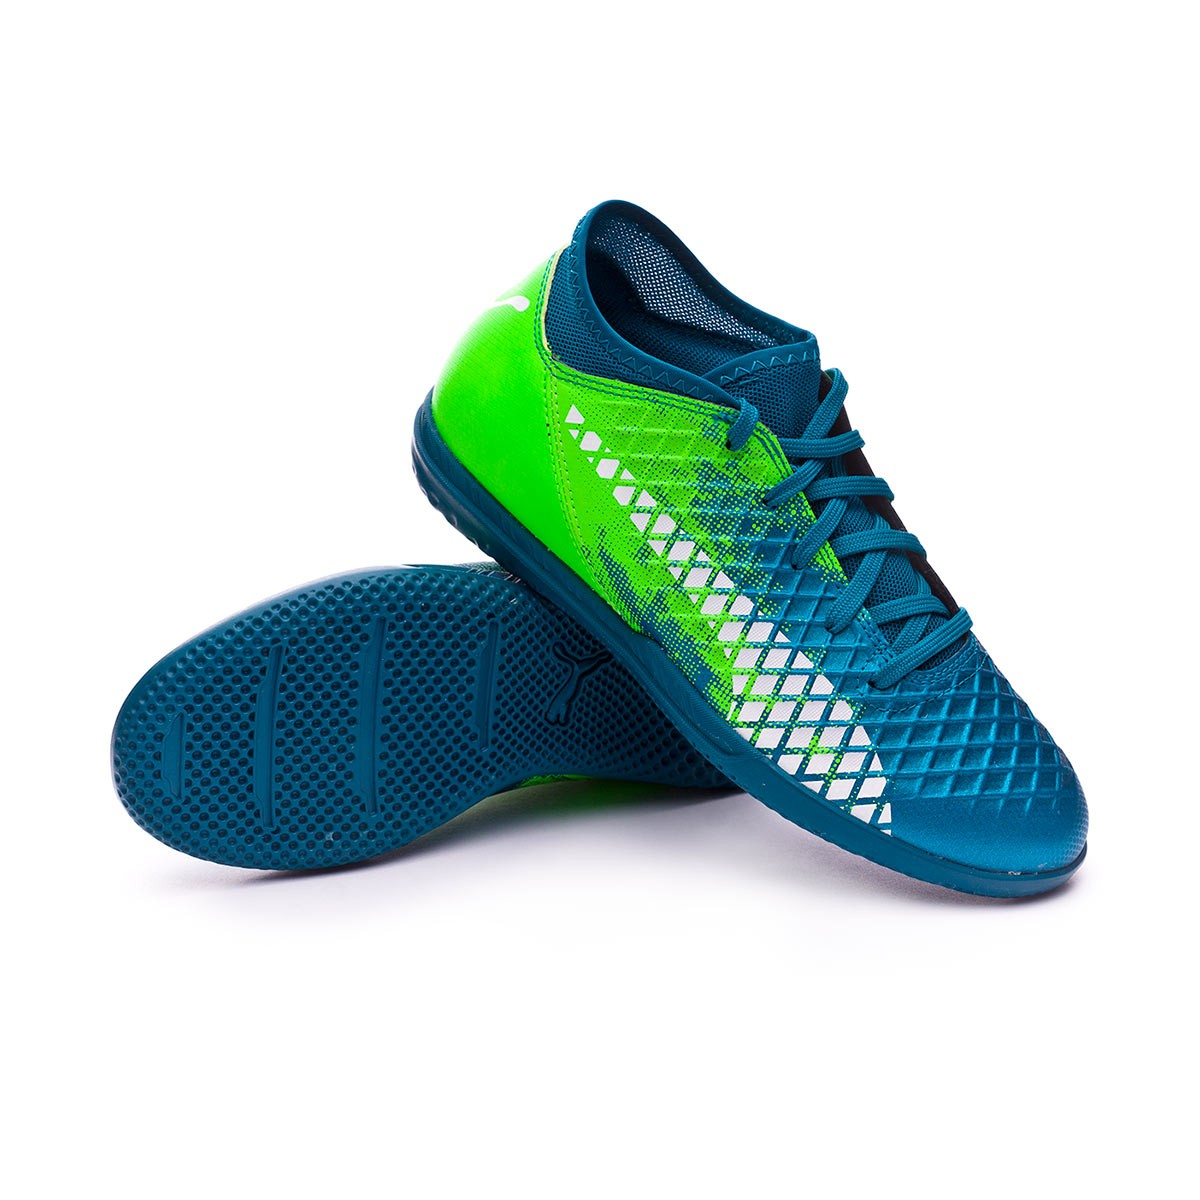 Futsal Boot Puma Future 18.4 IT Niño Deep Lagoon-Puma white-Green gecko -  Football store Fútbol Emotion 96b4b5538a